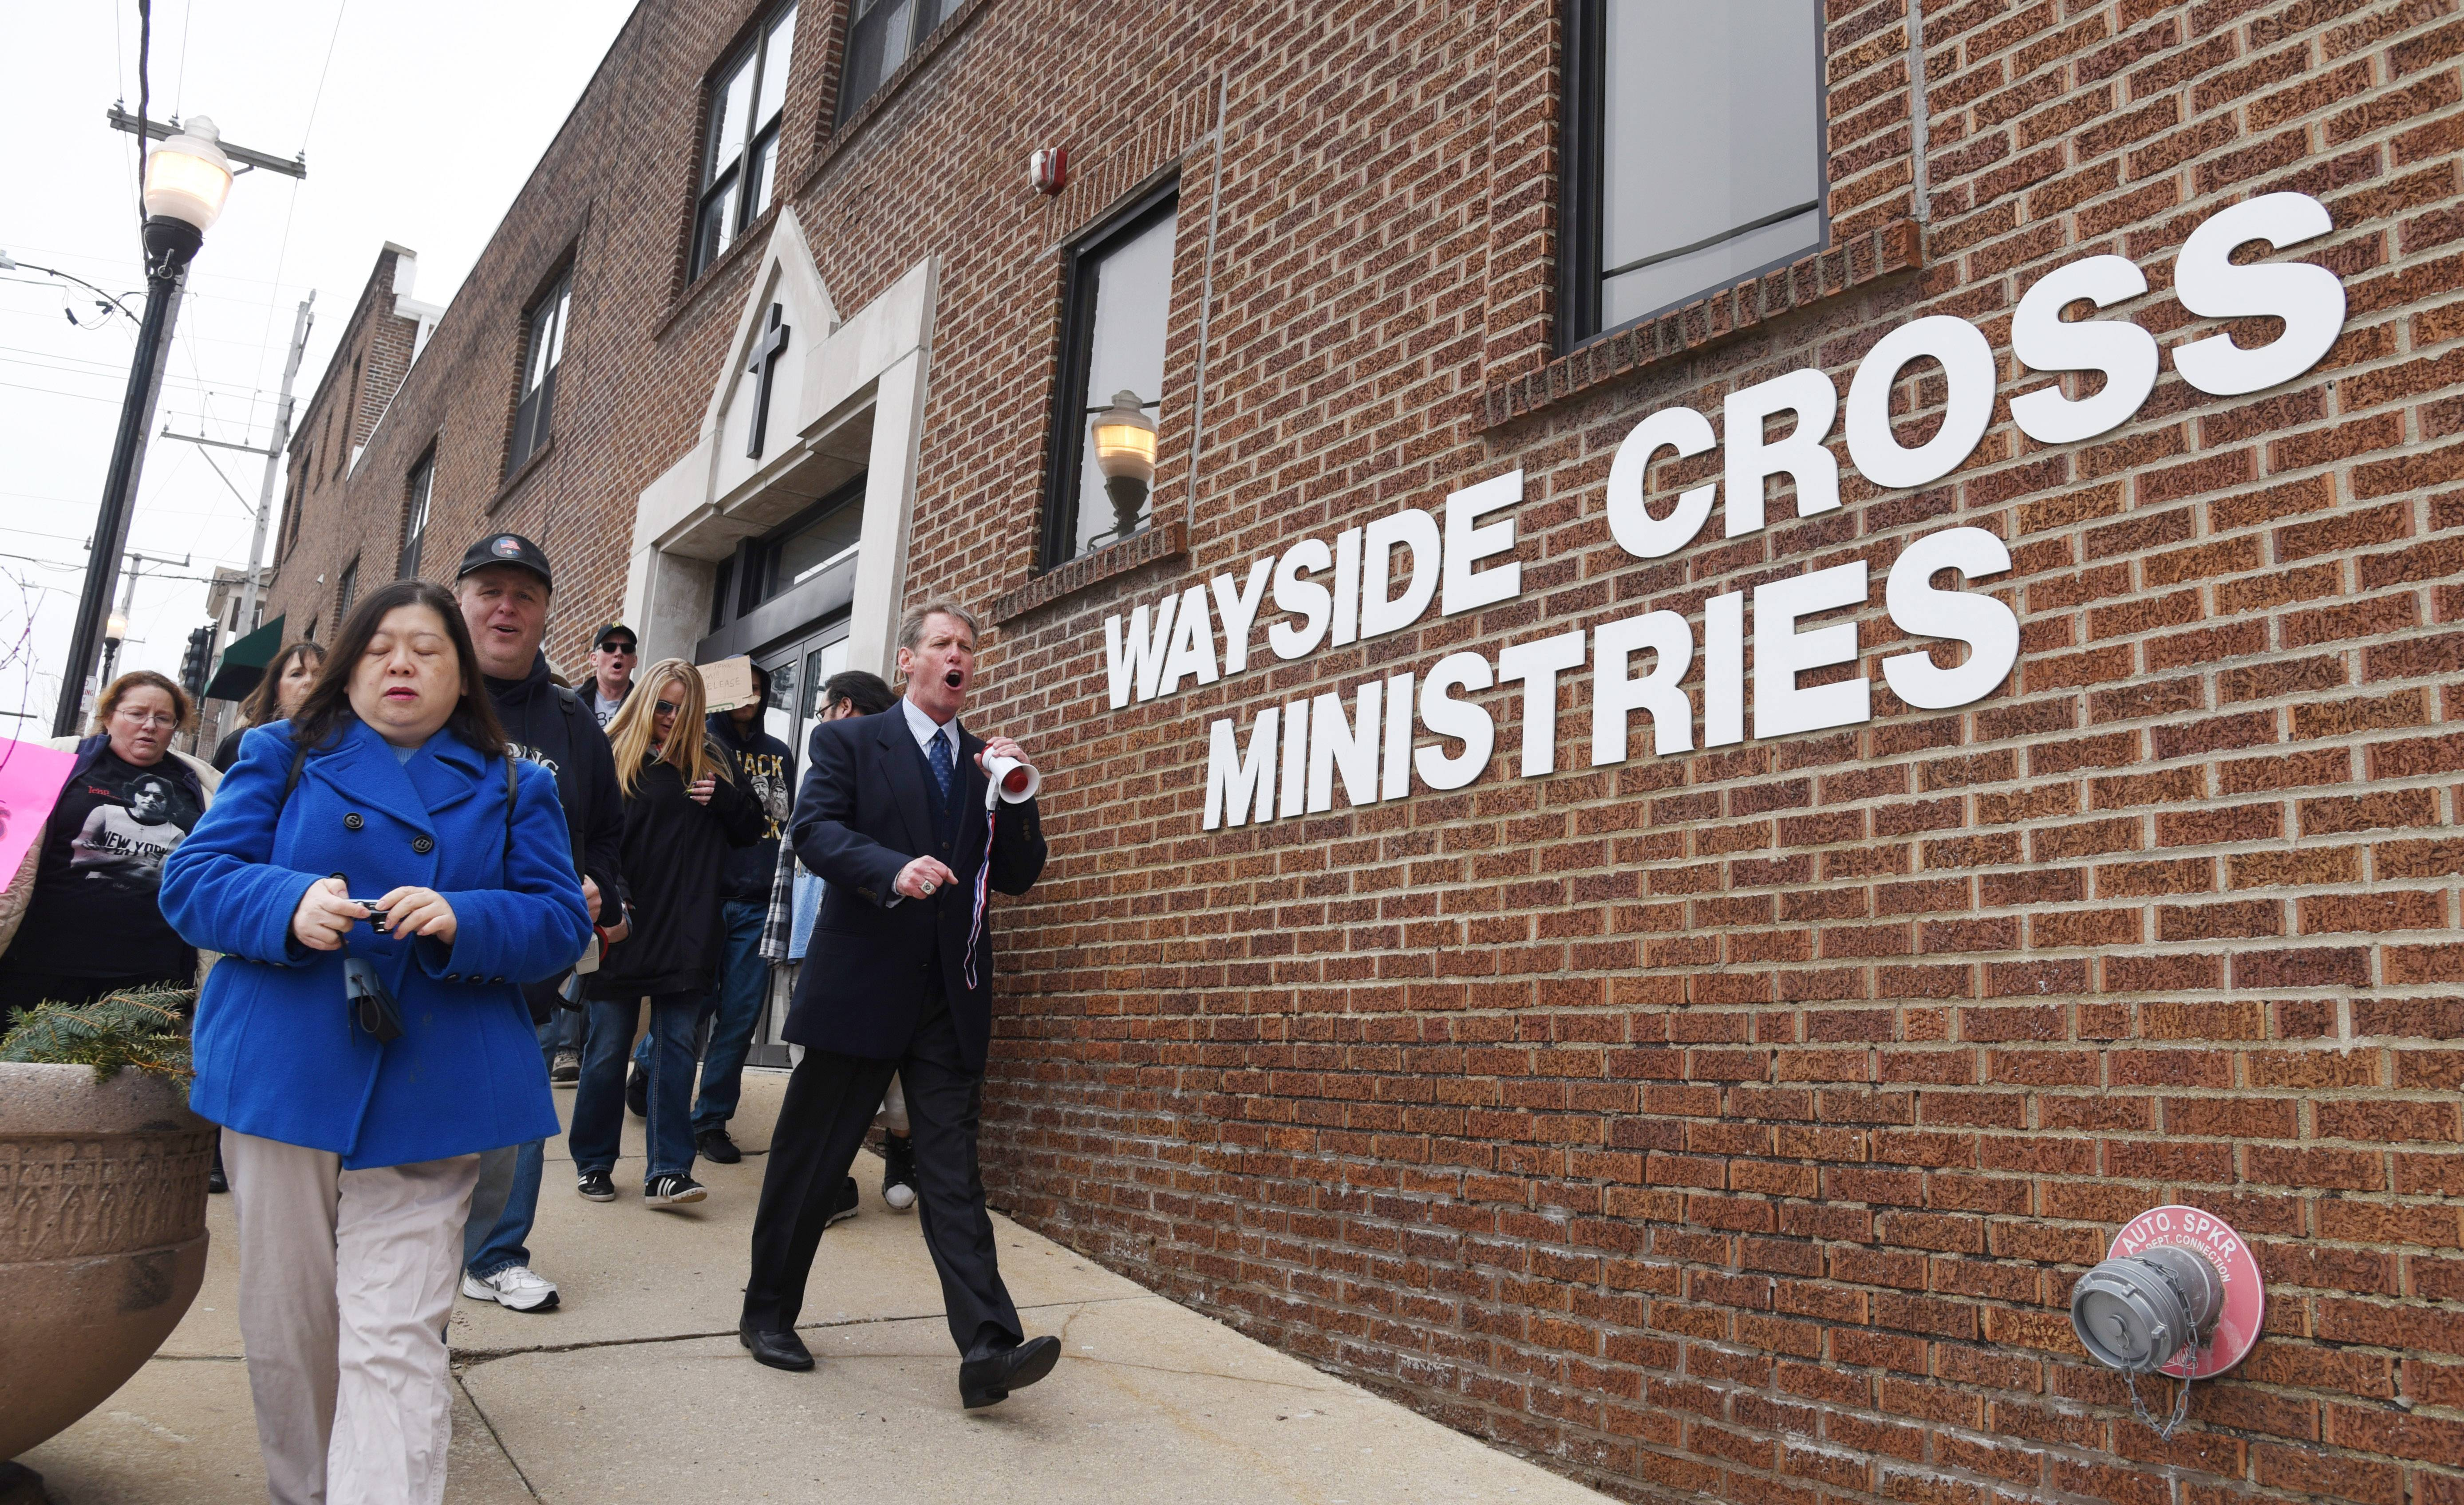 "Aurora resident Matt Harrington leads a march April 5 past the Wayside Cross Ministries facility on East New York Street in Aurora. The protest was organized over the mission accepting ""Ripper Crew"" murderer Thomas Kokoraleis as a resident in one of its programs."